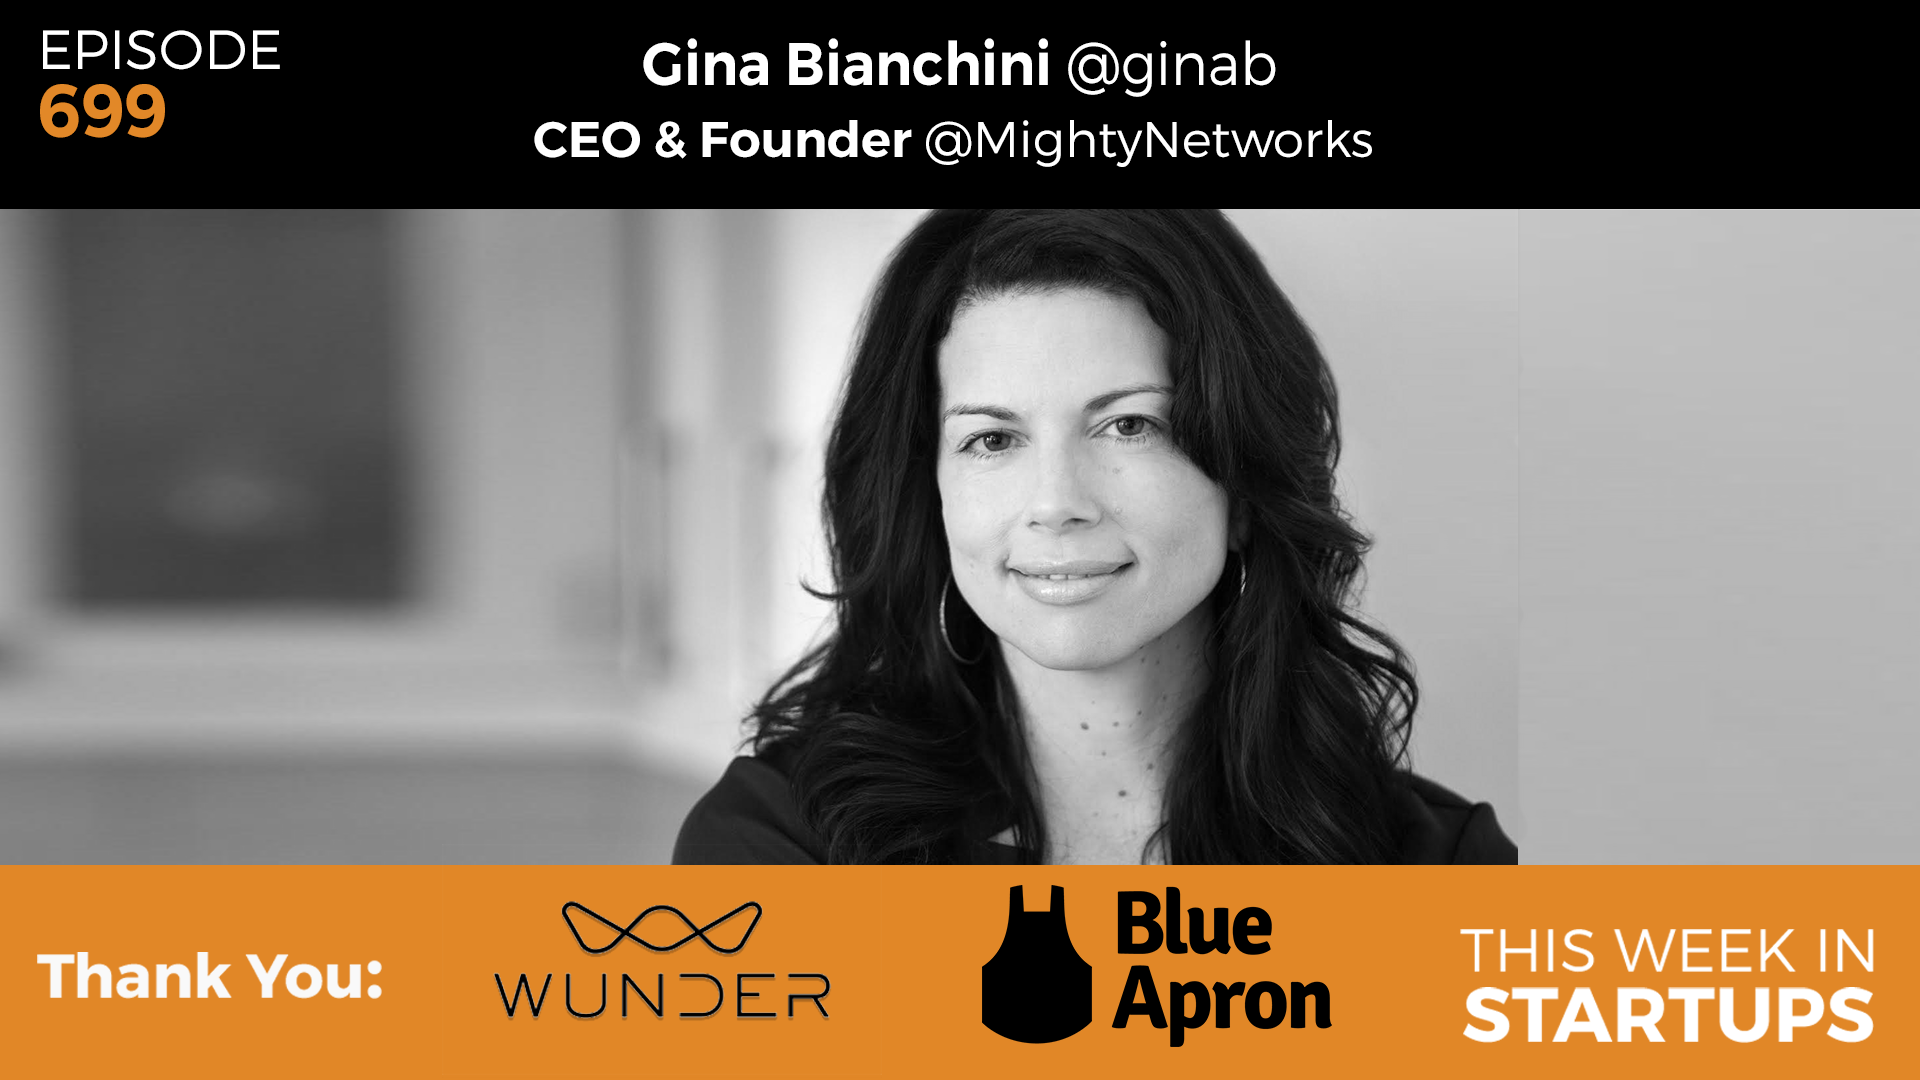 Blue apron ceo - E699 Mighty Networks Founder Ceo Gina Bianchini Builds Smarter Social Networks For Business And Lasting Online Communities Using Lessons From Ning The